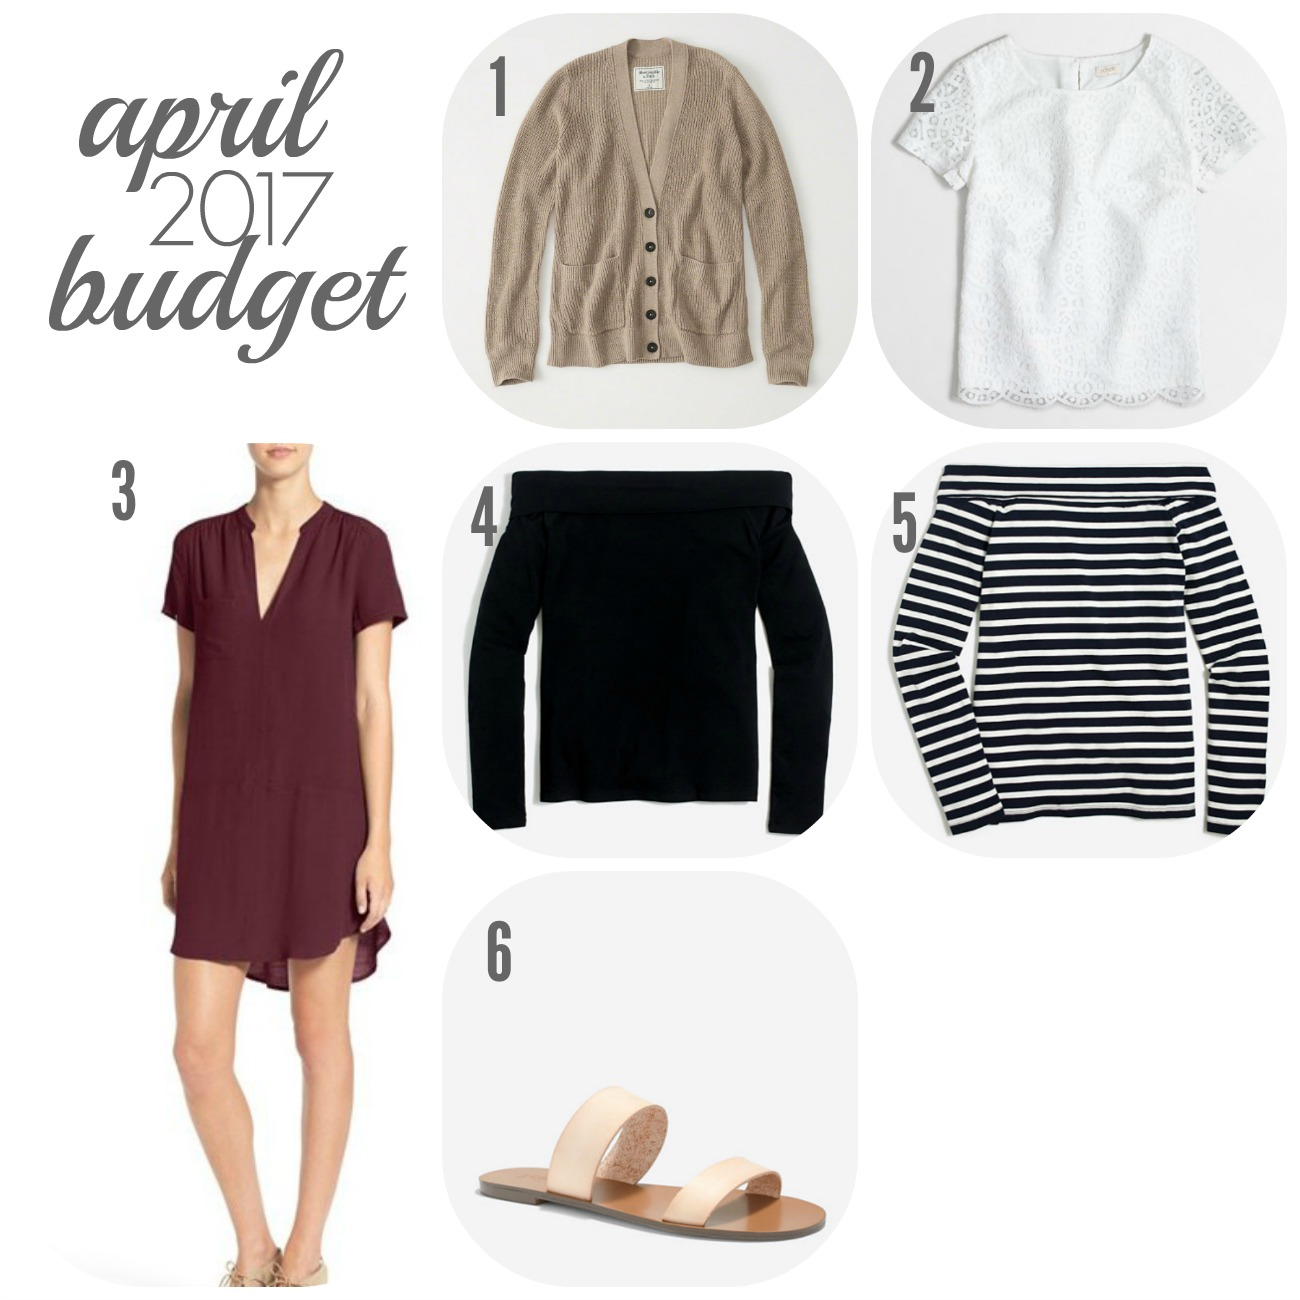 The April 2017 Budget | Something Good